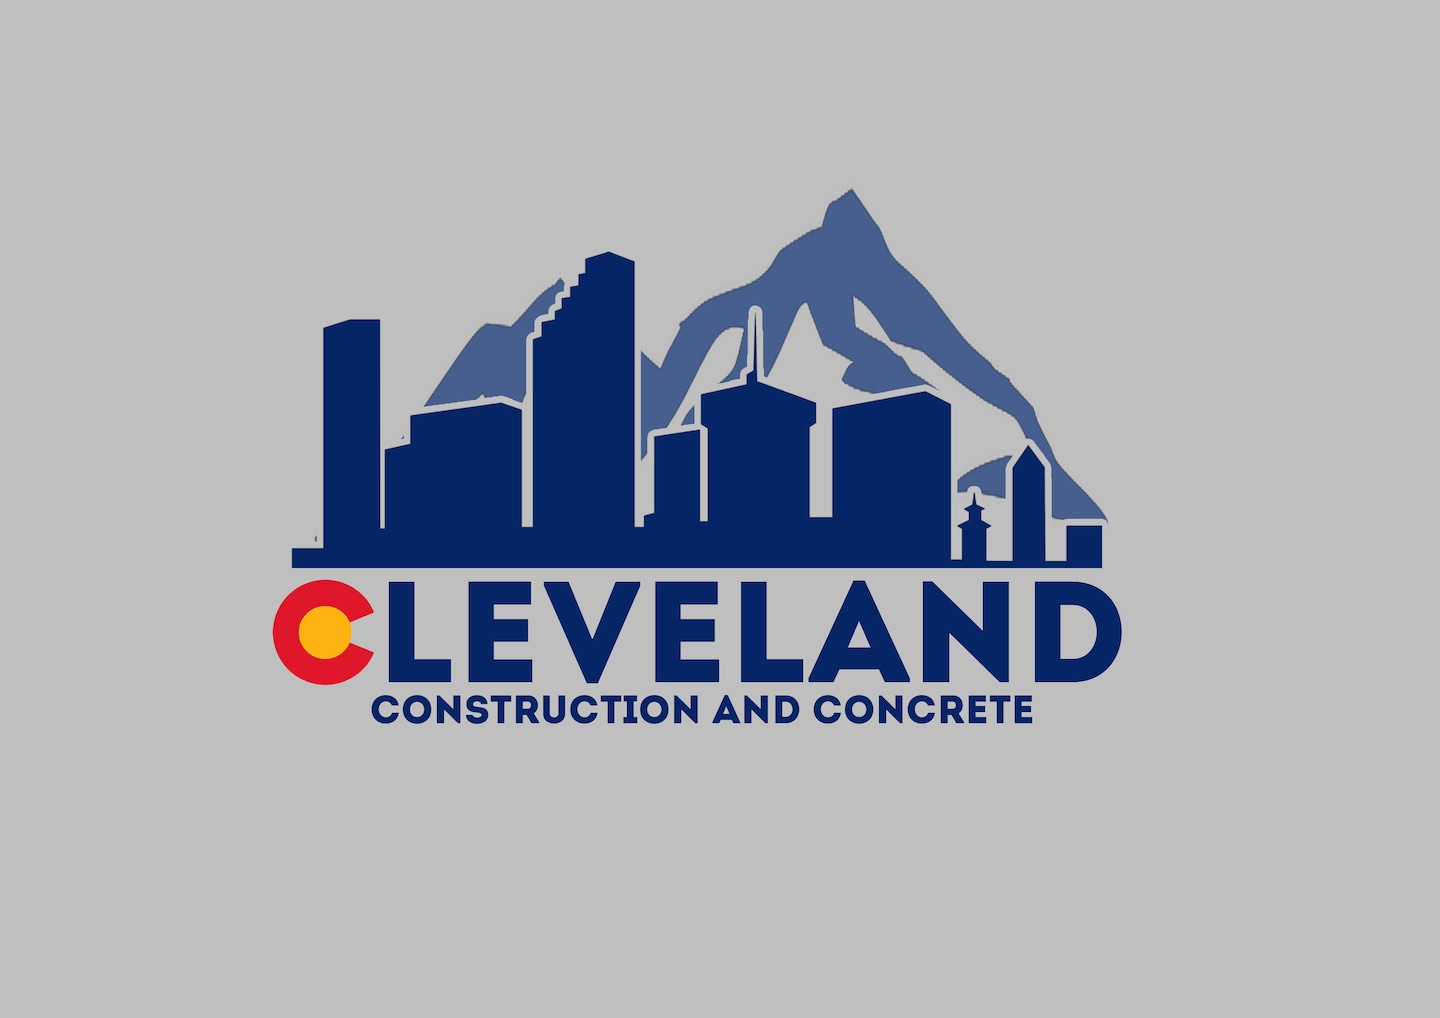 Cleveland Construction and Concrete